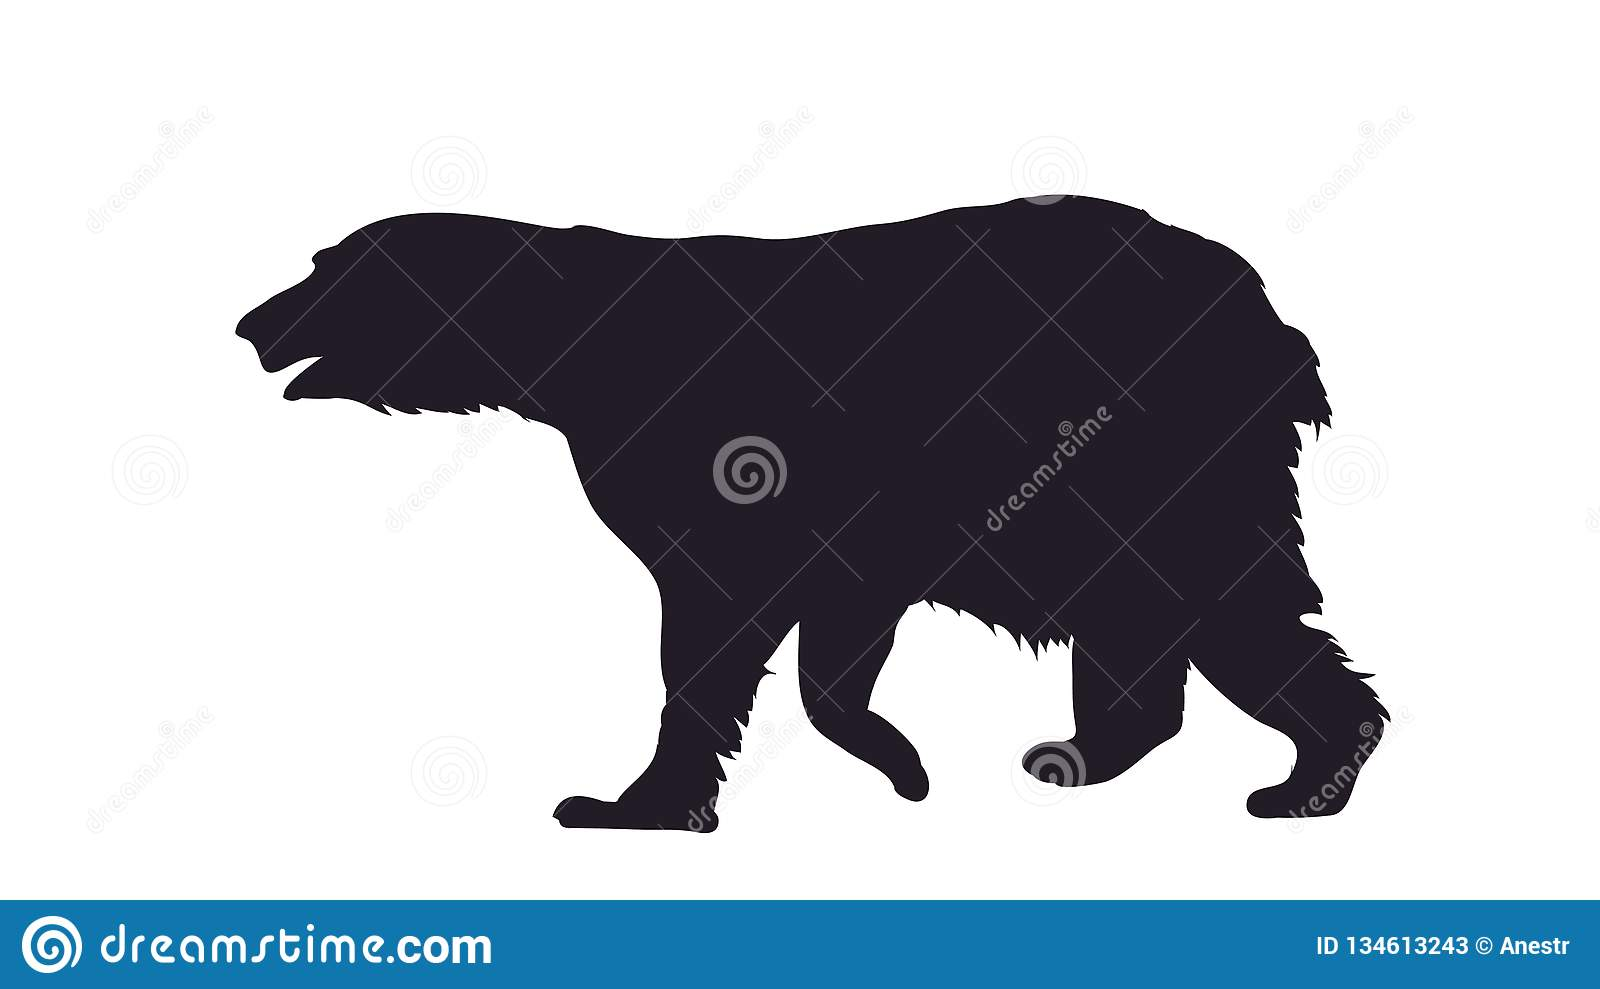 Vector illustration of a bear that stands, drawing silhouette